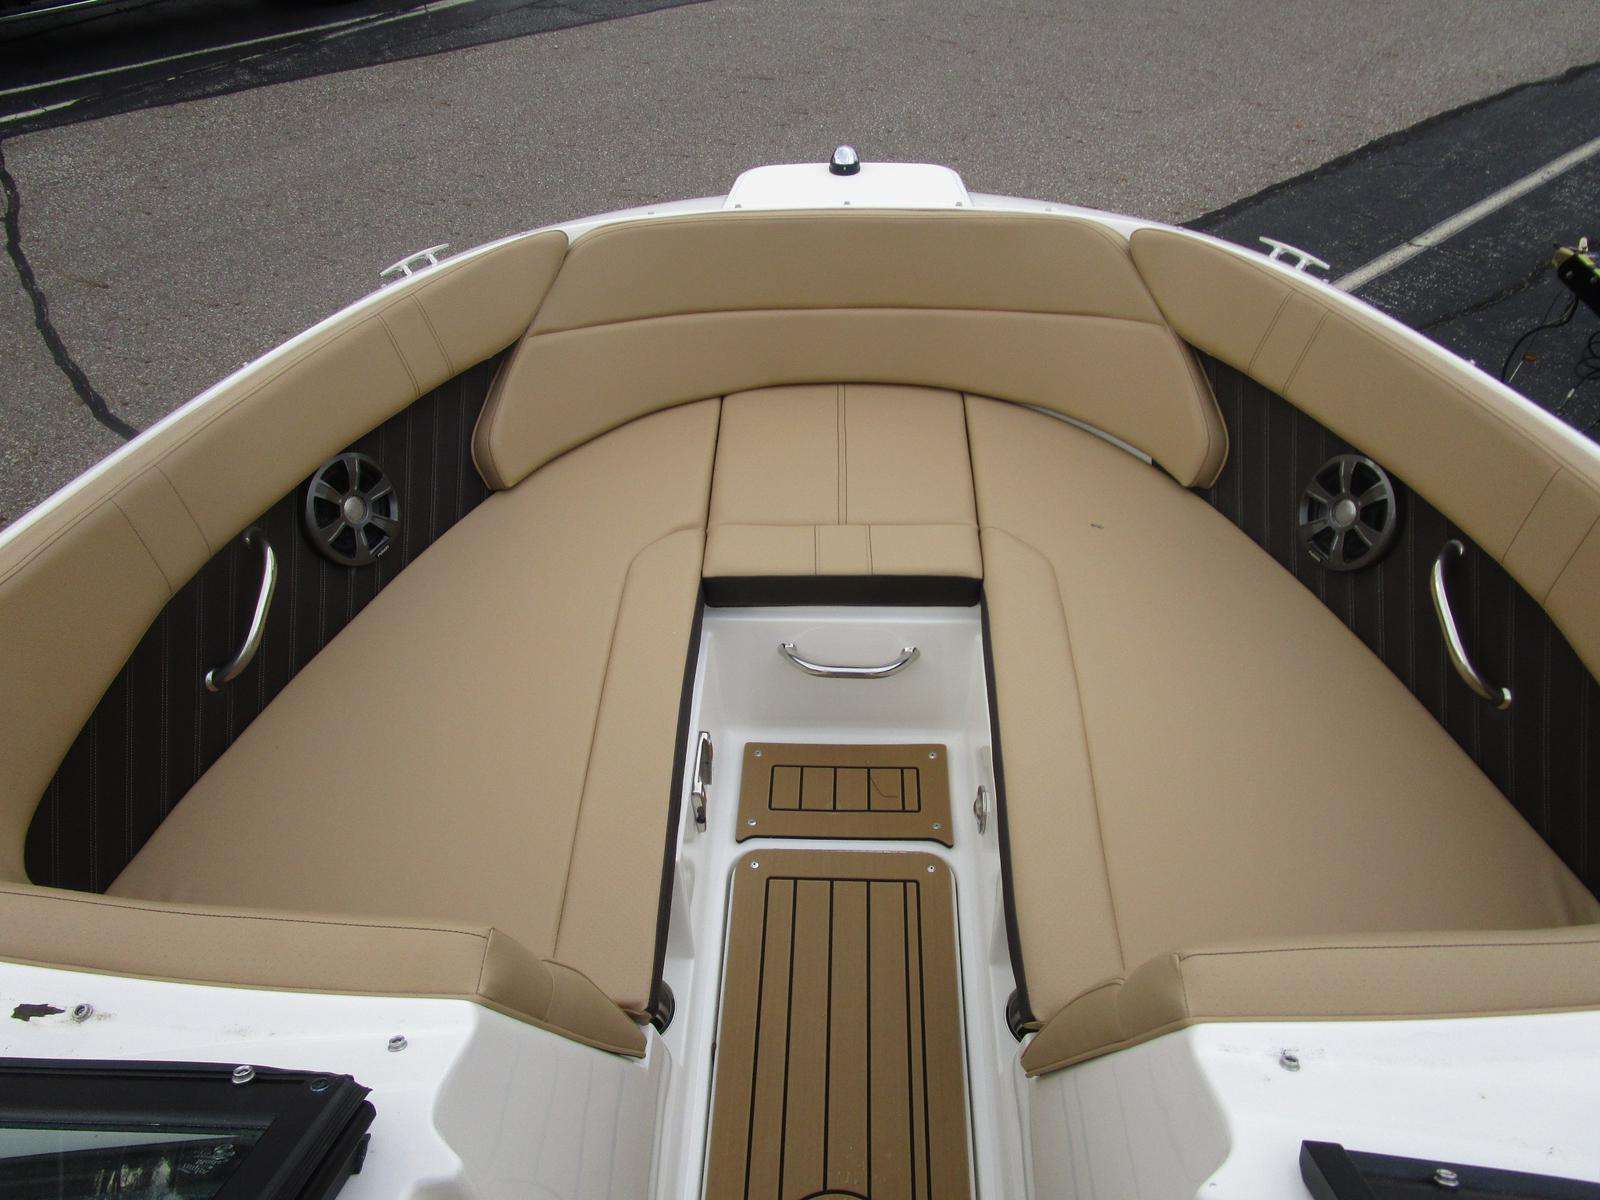 2019 Sea Ray boat for sale, model of the boat is SPX 230 & Image # 5 of 7